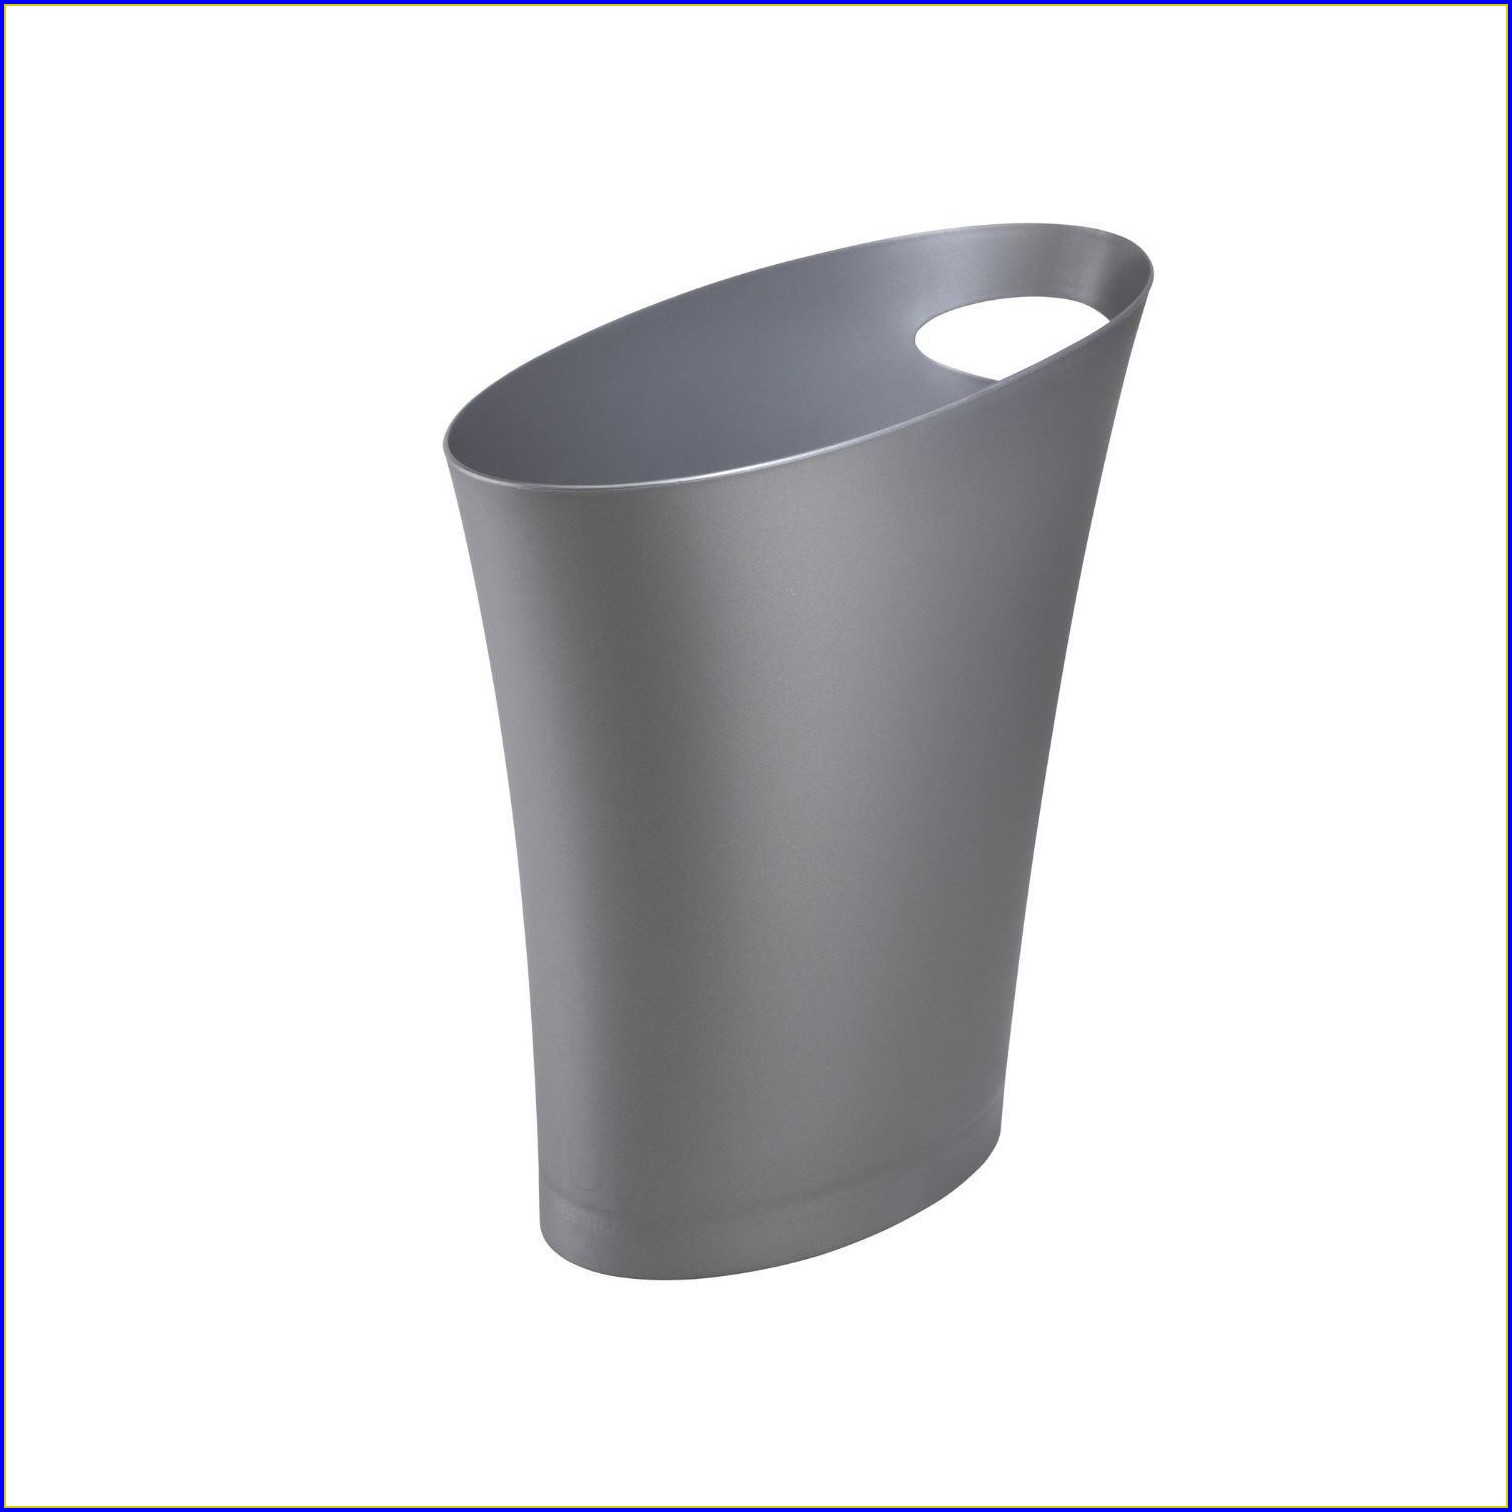 Bathroom Garbage Cans With Lids